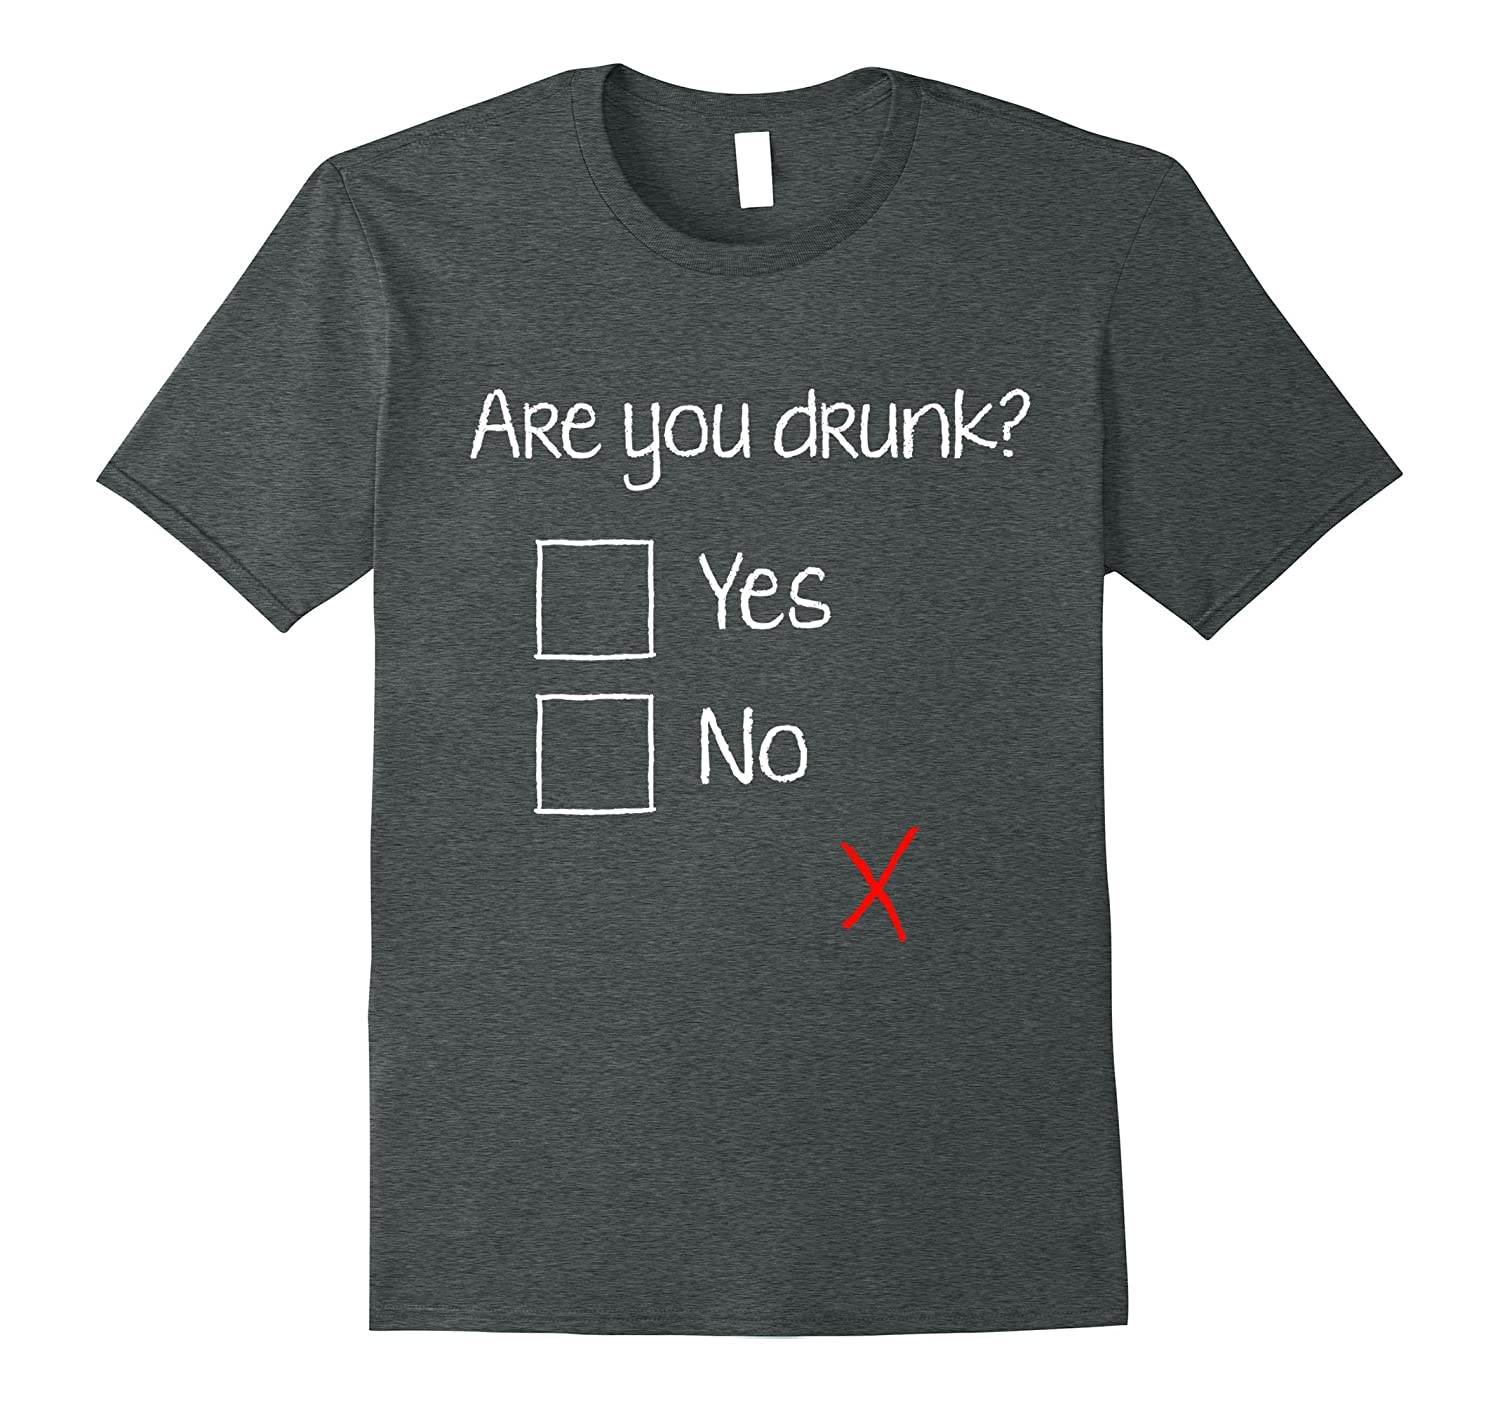 Are You Drunk? Yes No T-shirt Sober Question Funny Shirt-TH